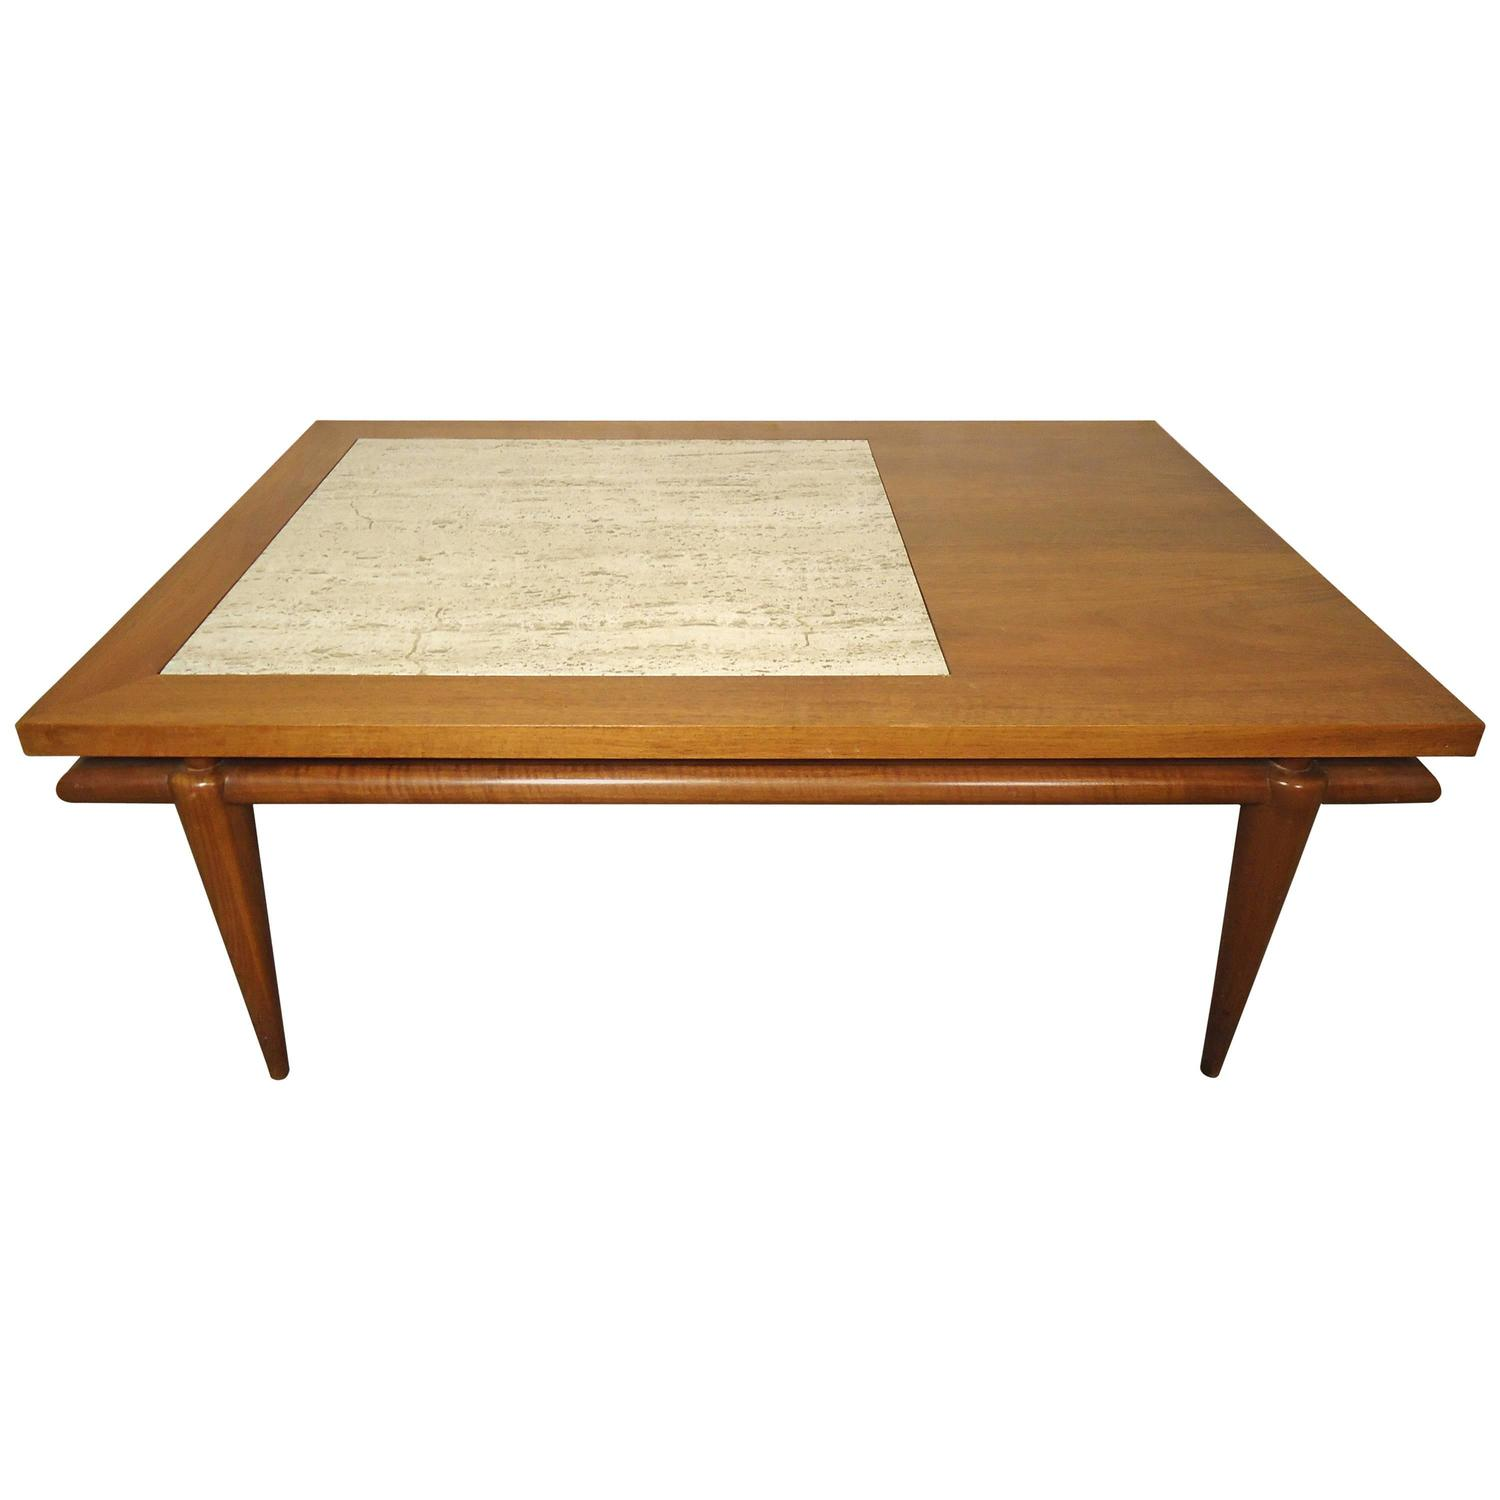 dsc modern furniture century mid phylum walnut coffee table